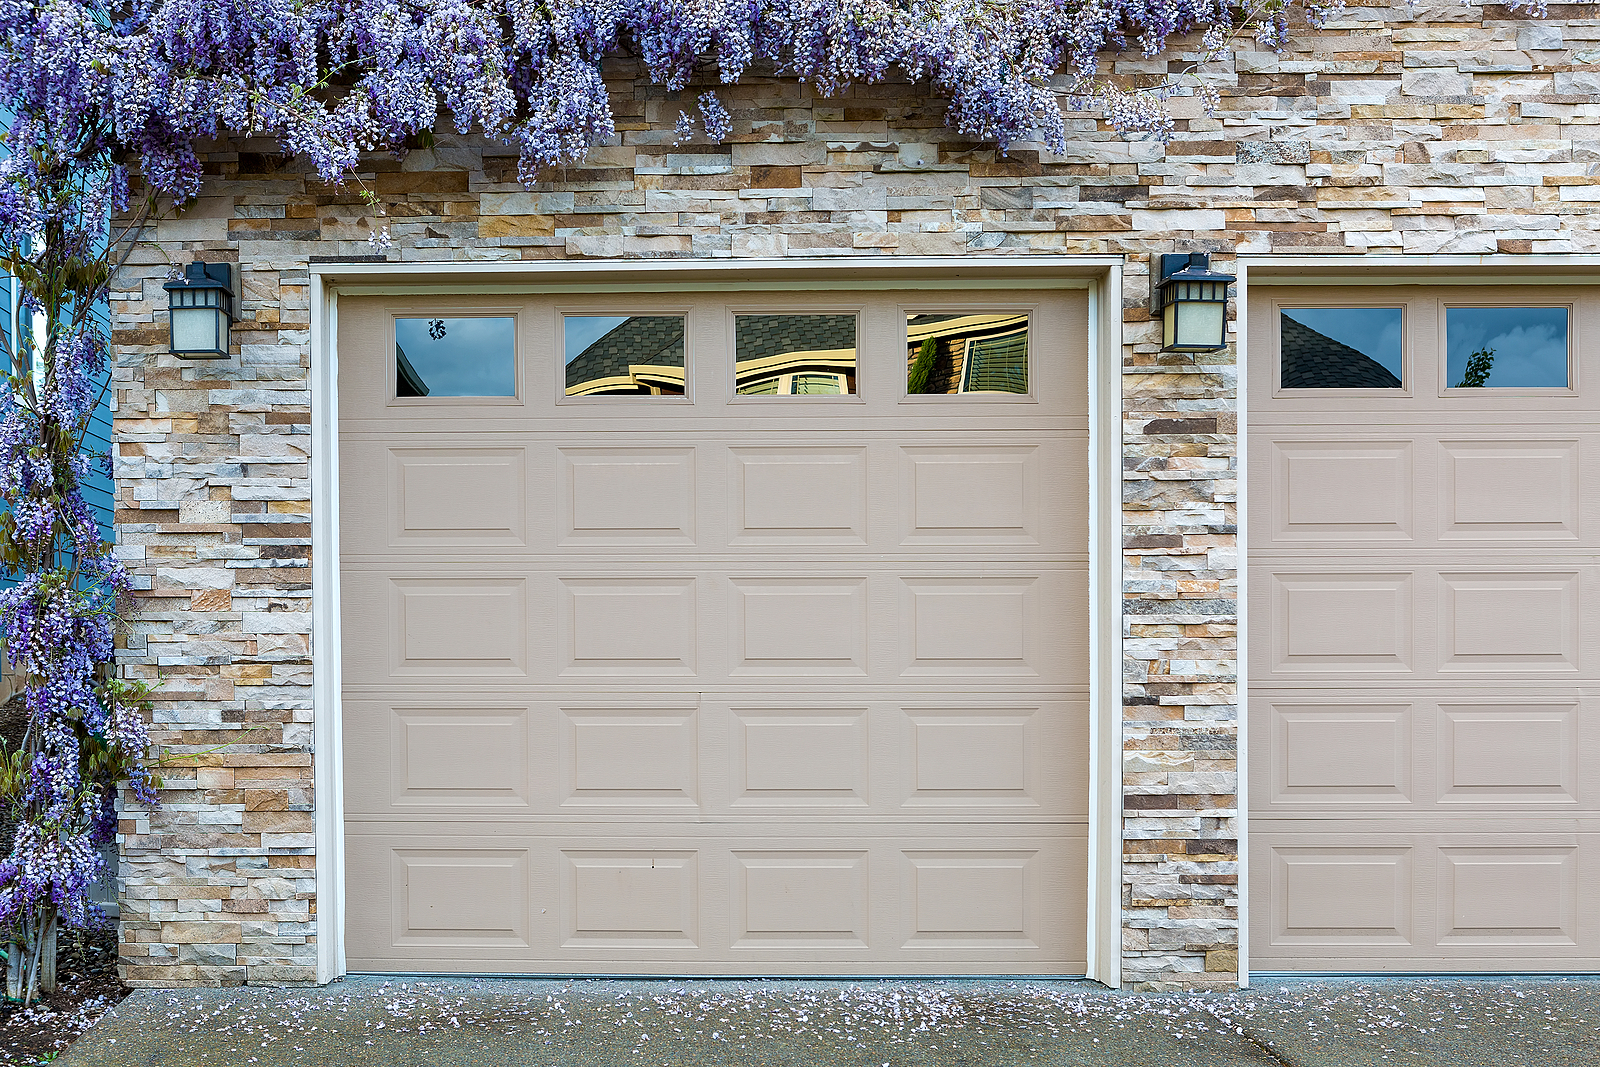 House-Front-with-Two-Beige-Garage-Doors-and-Wisteria-Growing-on-Wall